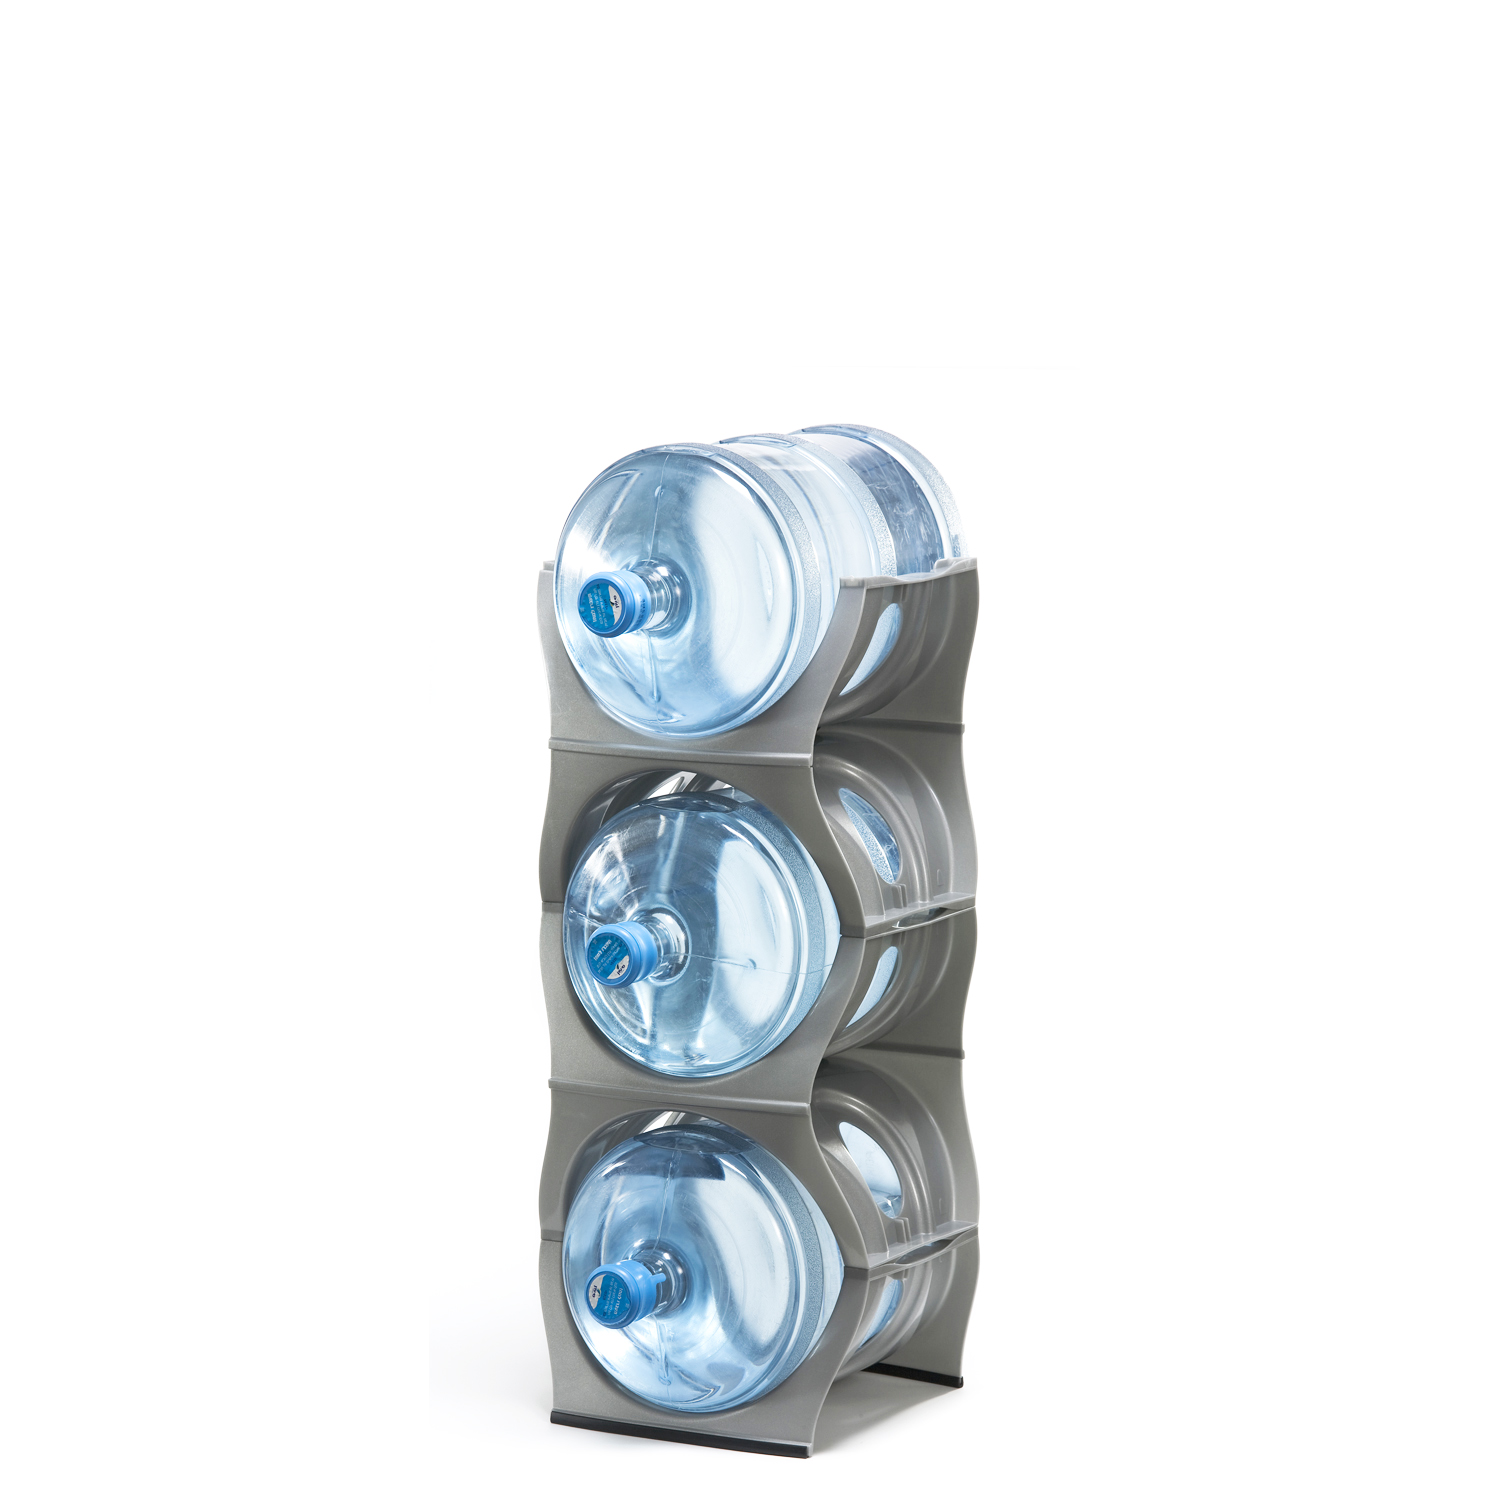 5 Gallon Water Bottle Rack Related Keywords